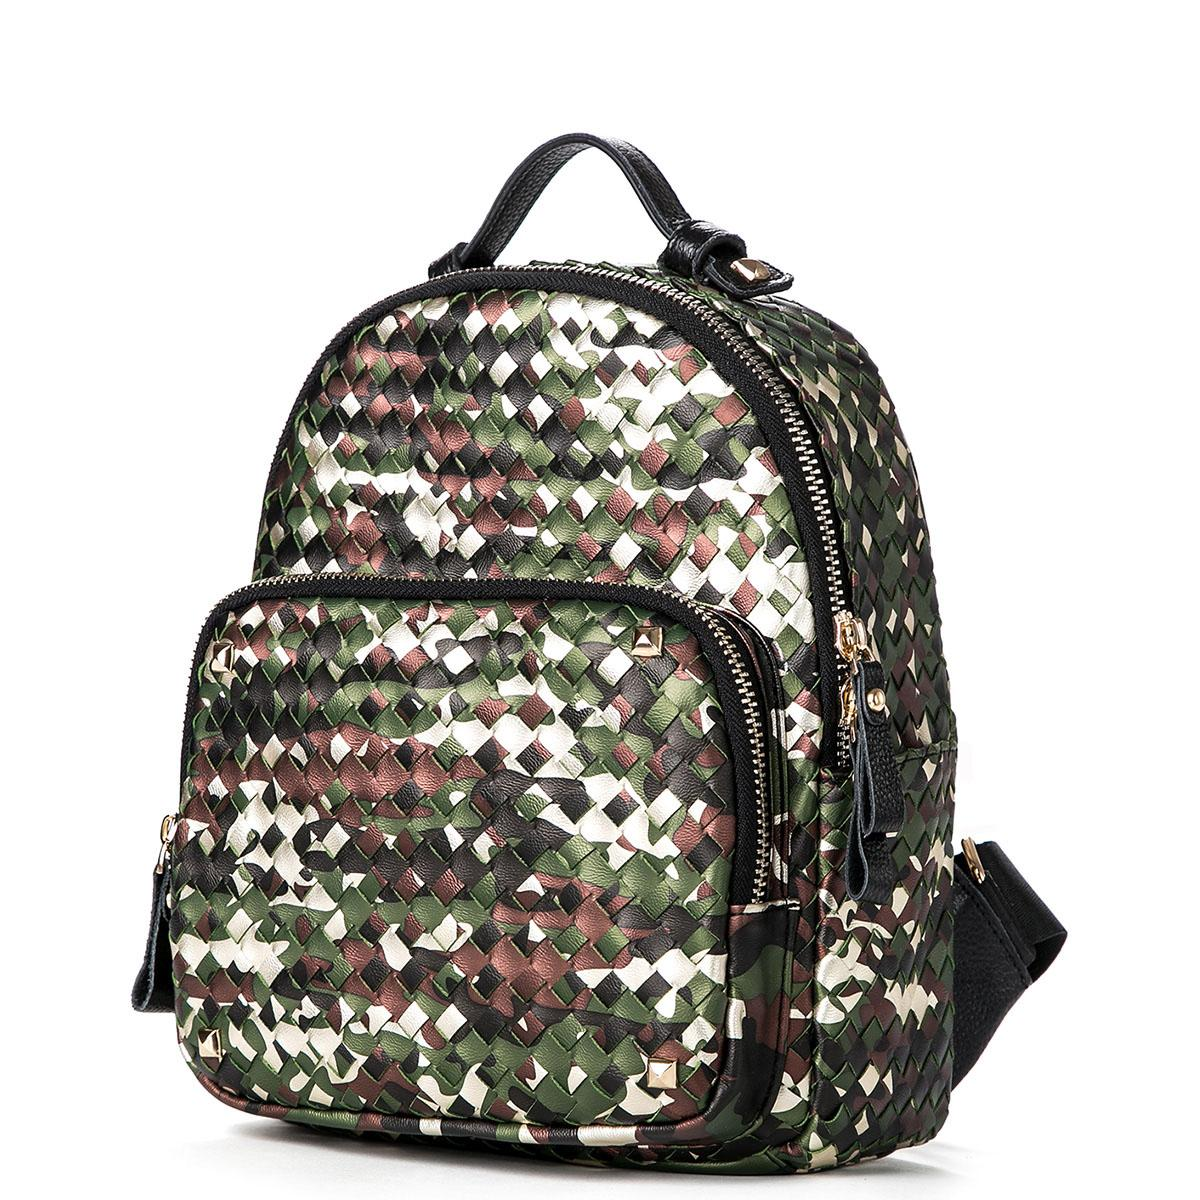 Small Backpacks For Girls YtRPNokv